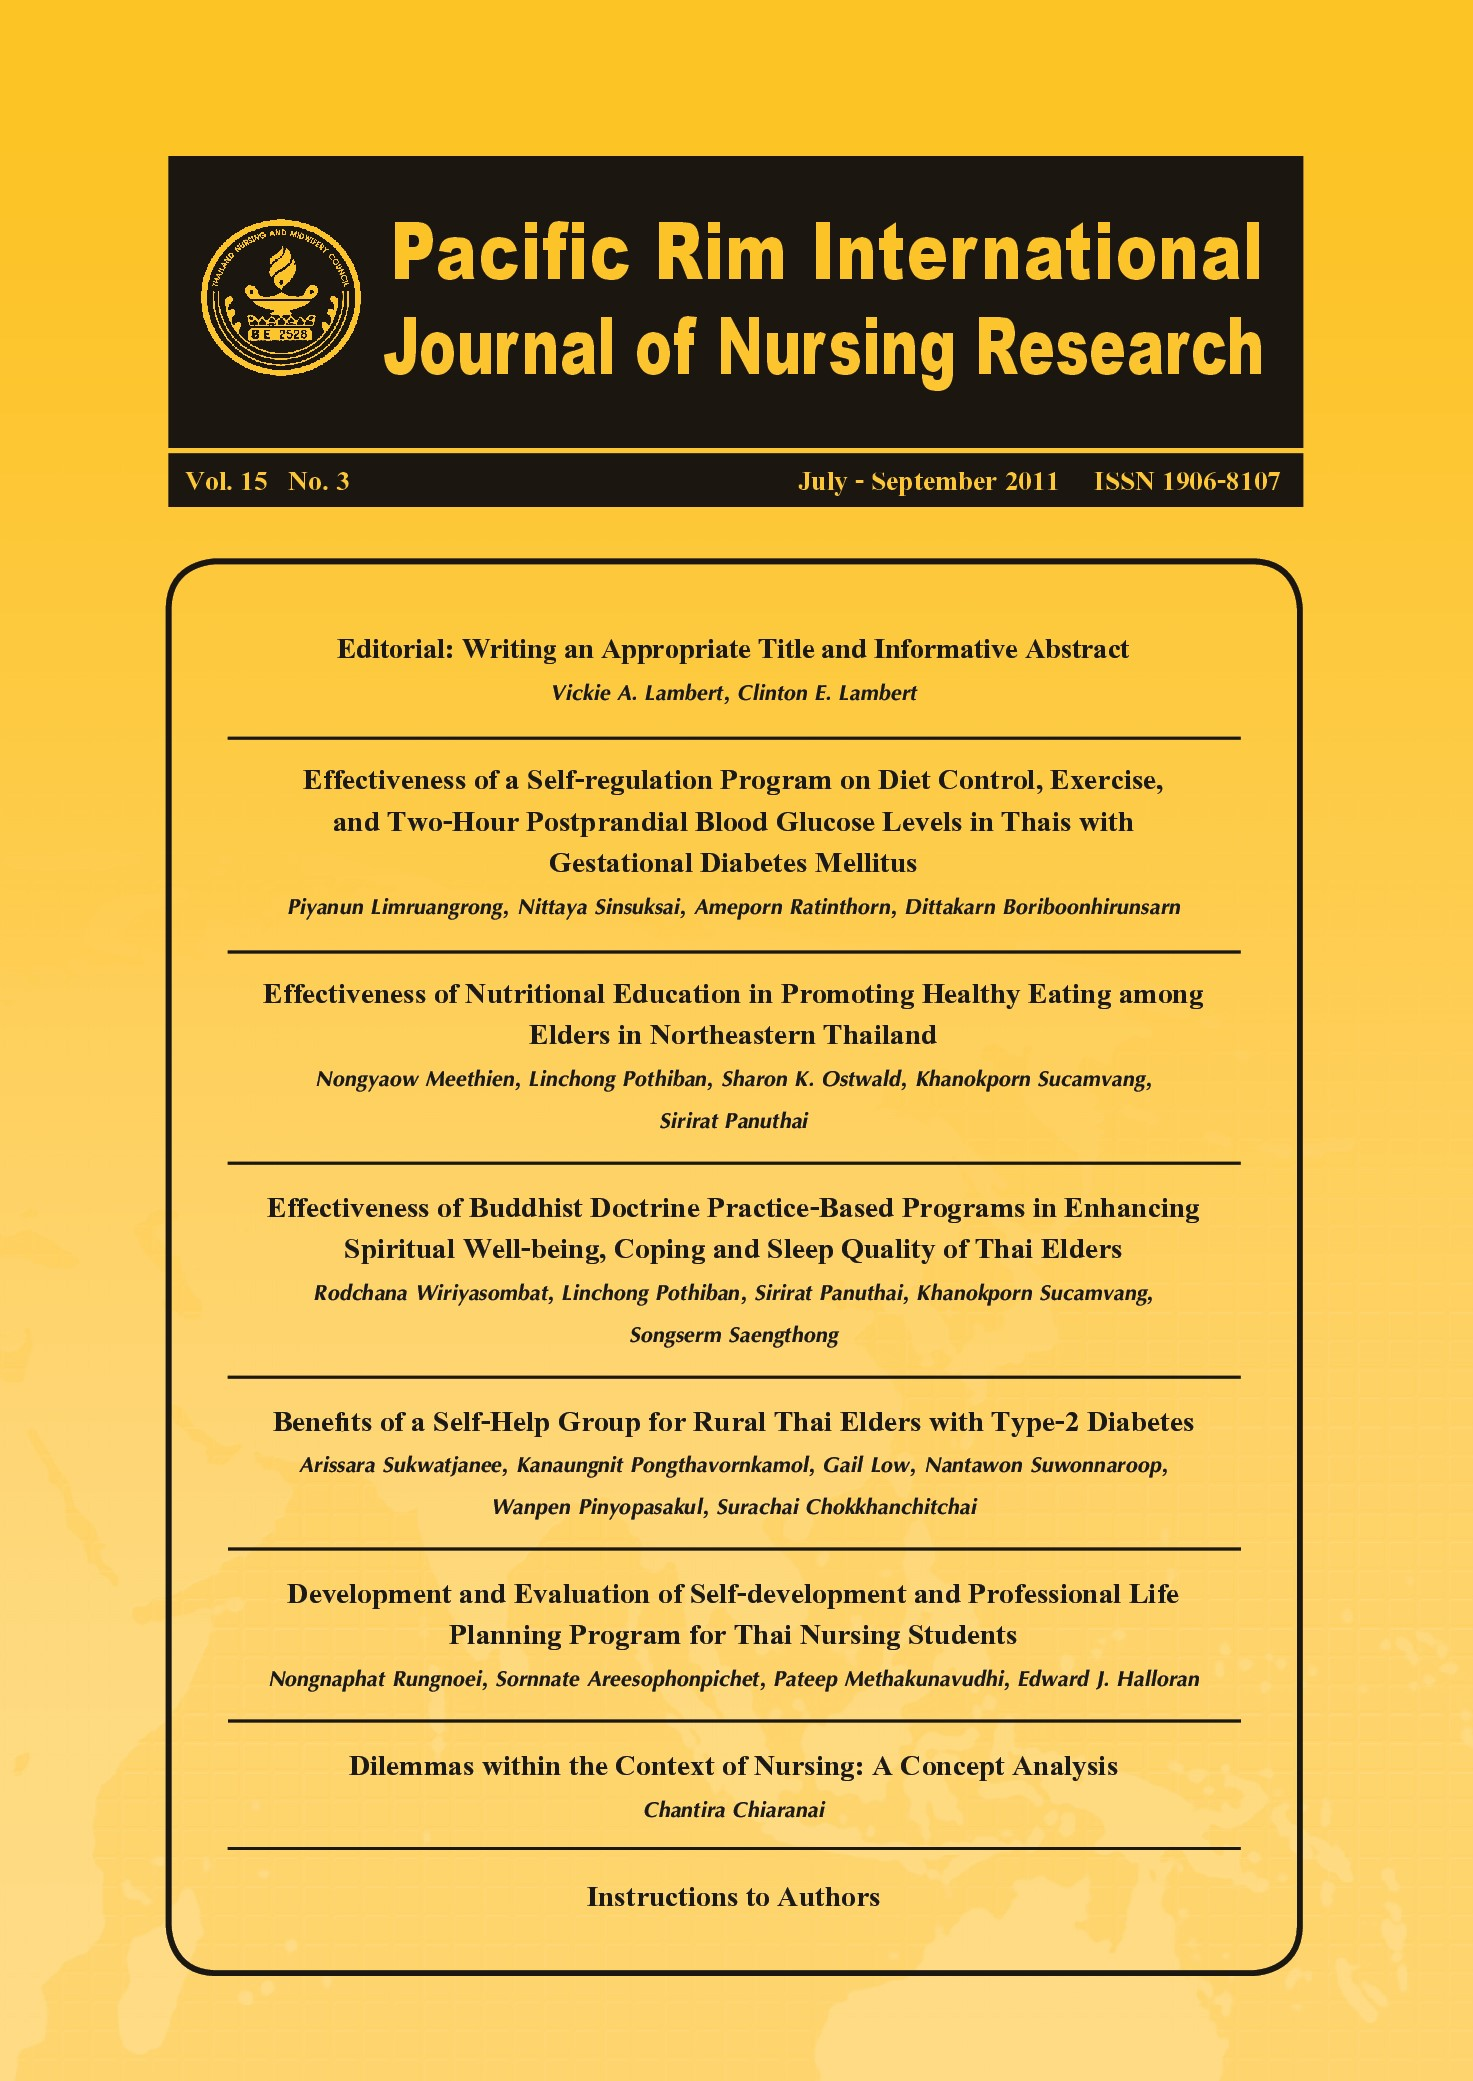 016 Research Paper Nursing Articles On Diabetes Pdf Cover Issue 842 En Us Amazing Full